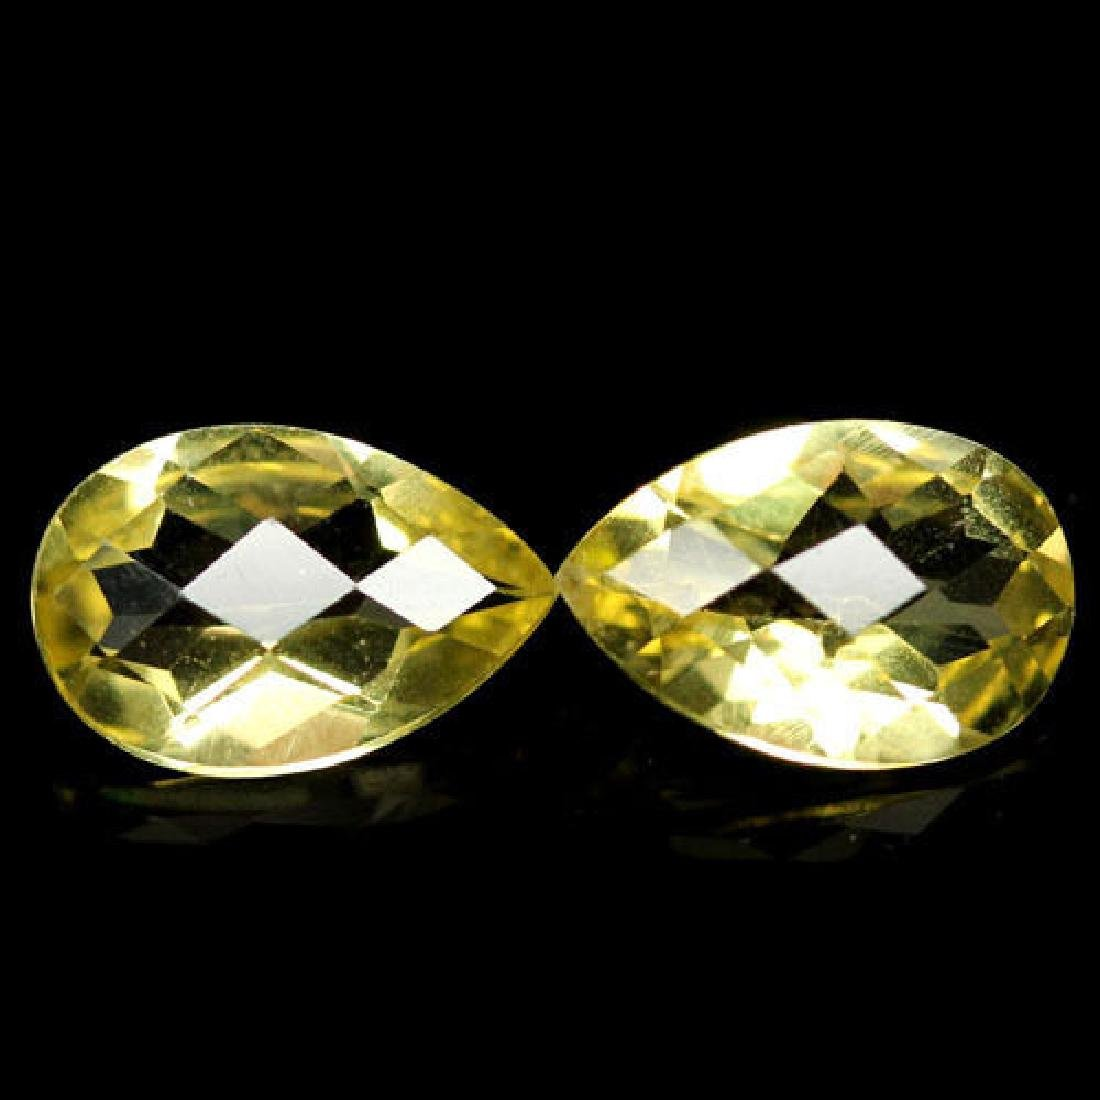 PAIR OF 5.20 CTS OF LEMON YELLOW AFRICAN QUARTZ